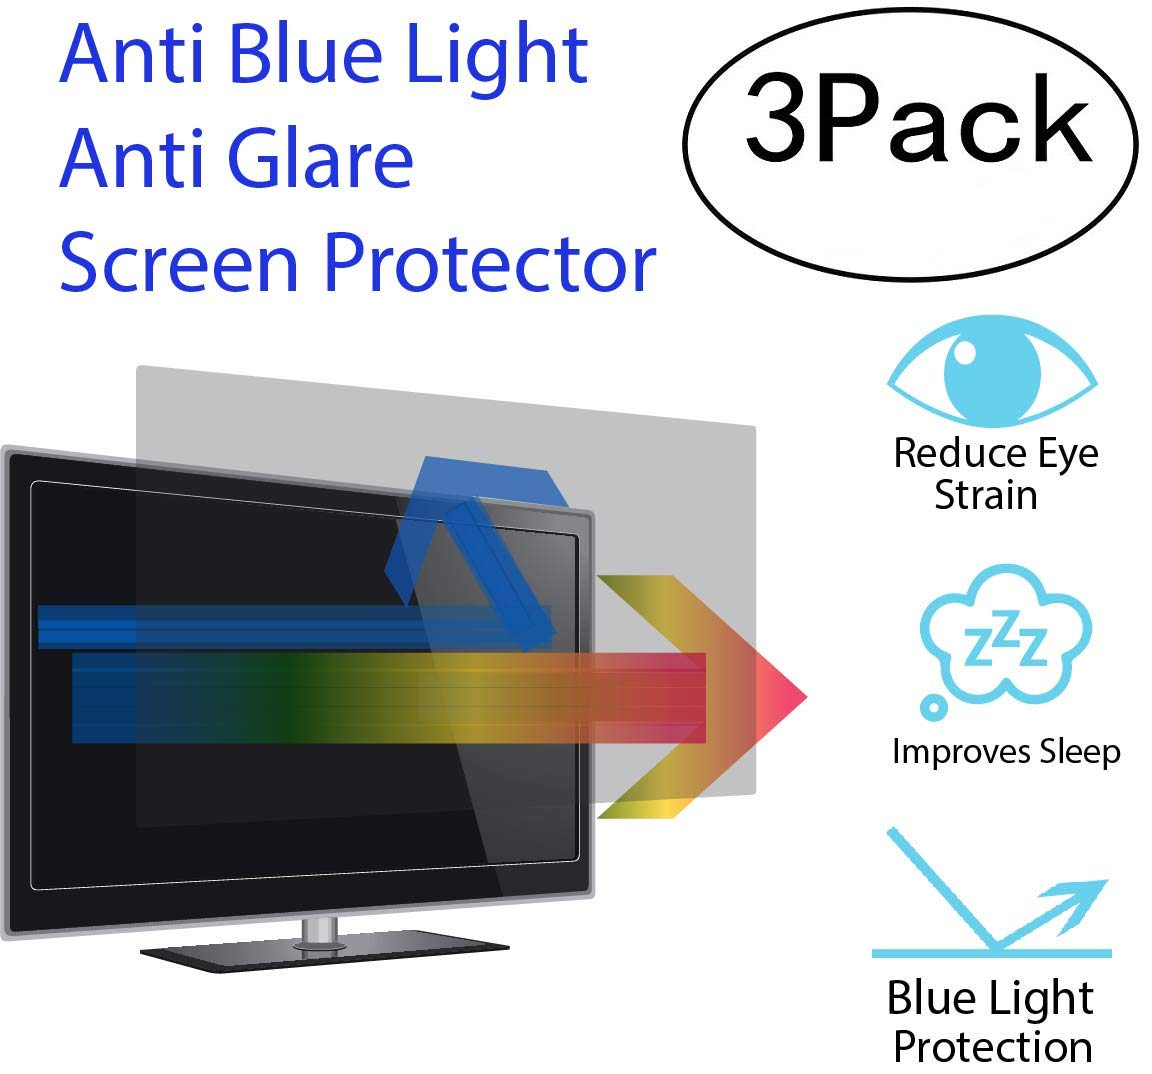 Premium Anti Blue Light and Anti Glare Screen Protector for 24 Inches Laptop with Aspect Ratio 16:09 by WS SCREEN PROTECTOR